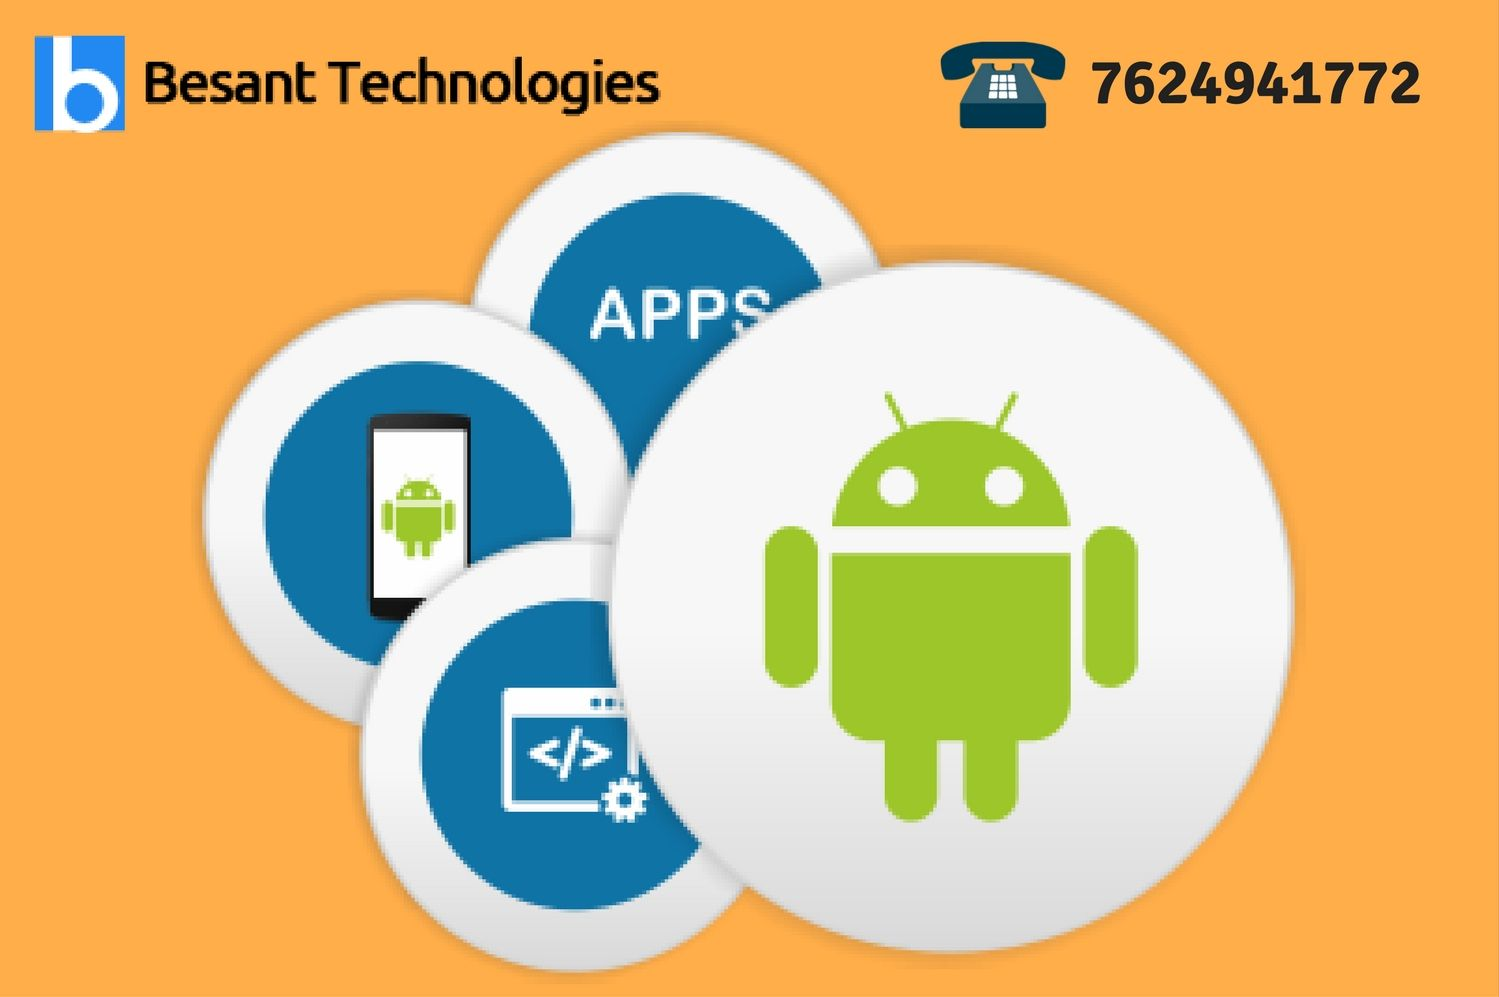 Android Training in Bangalore App development